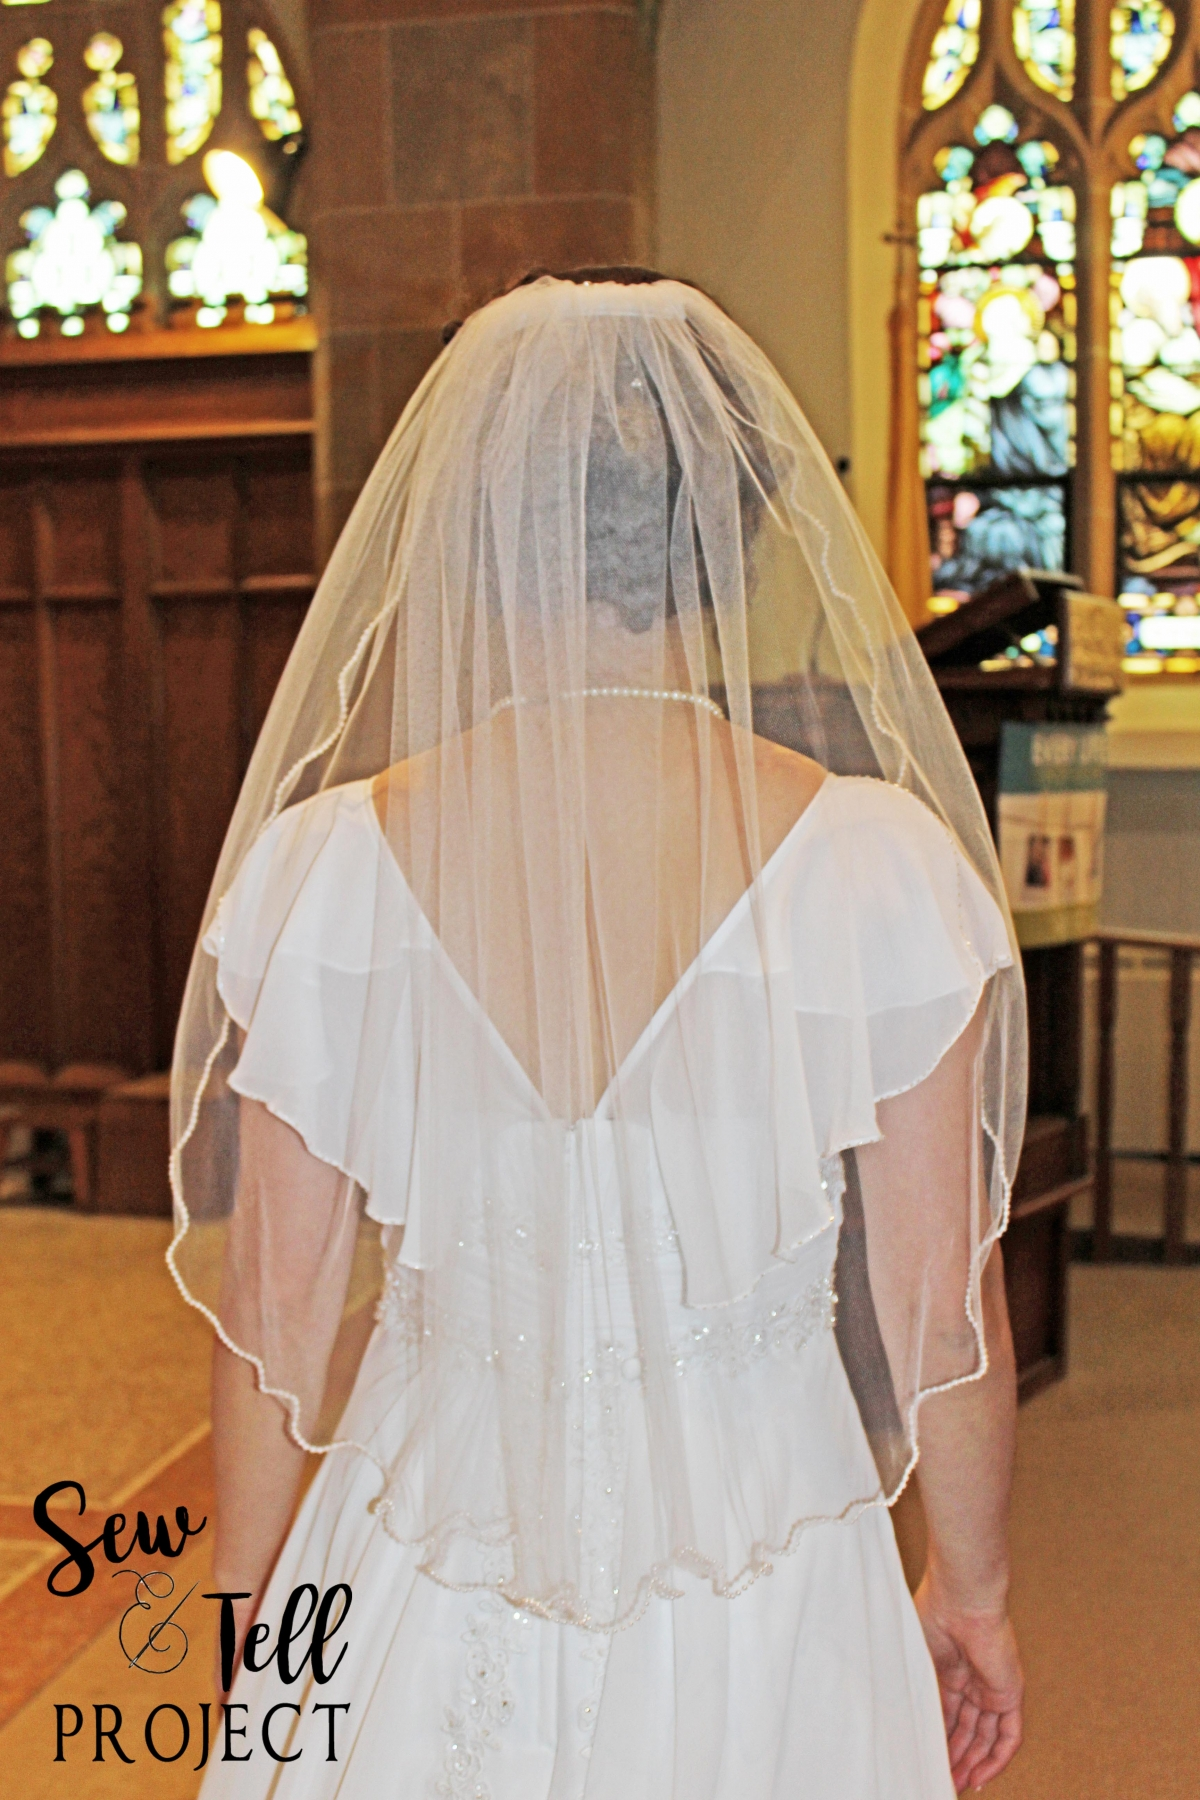 A Handmade Veil Adds Such Special Touch To Momentous Occasions Weddings And First Communions In Addition Creating Memento Of The Day